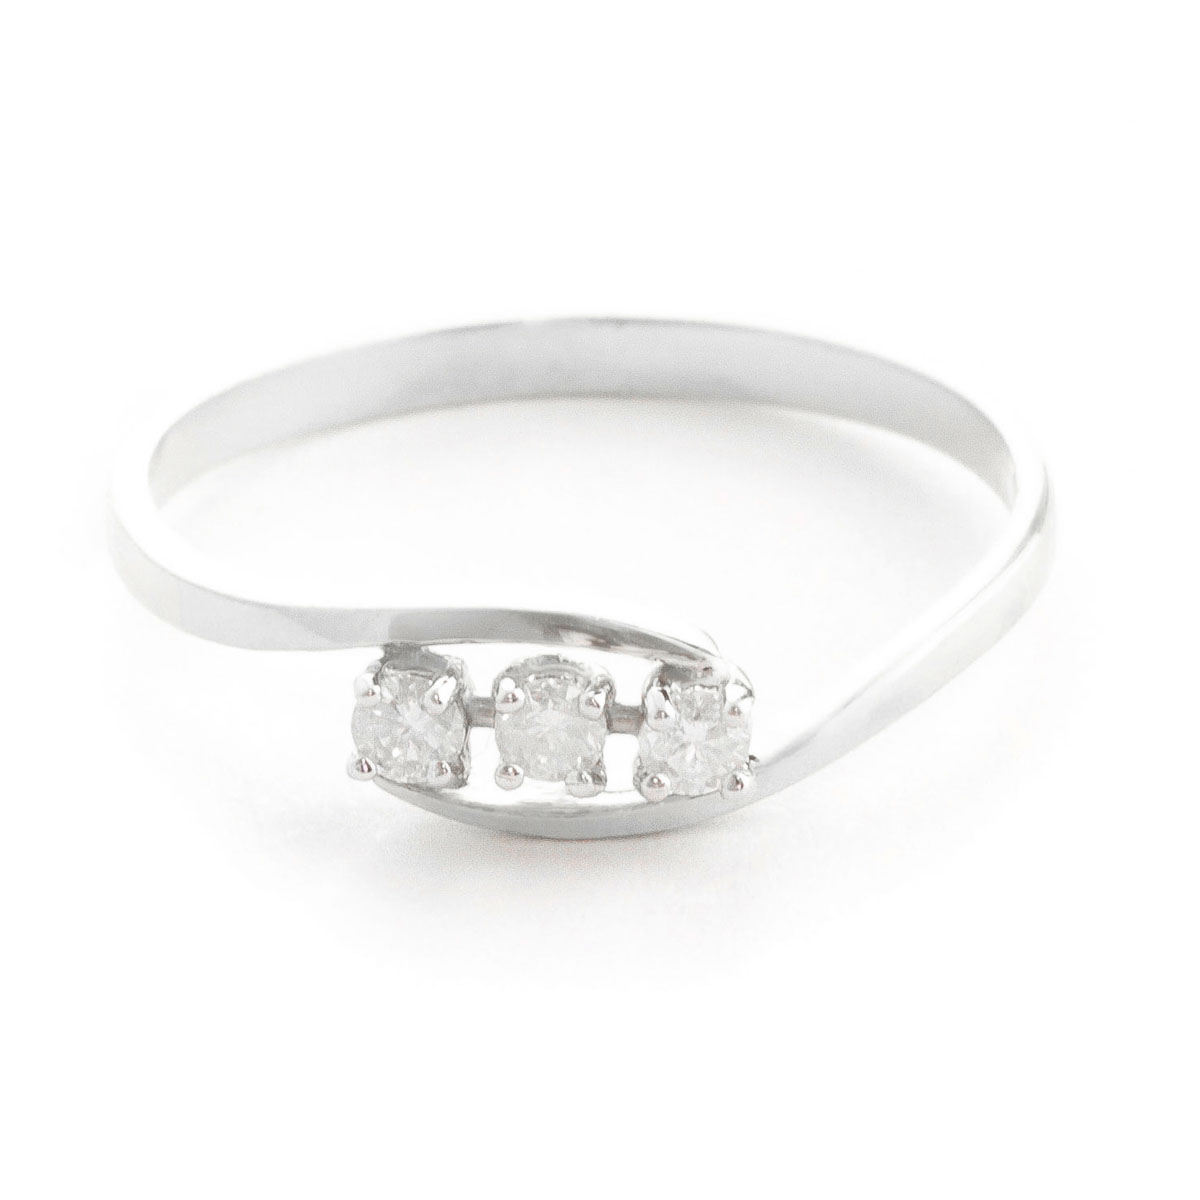 Round Cut Diamond Ring 0.15 ctw in 9ct White Gold